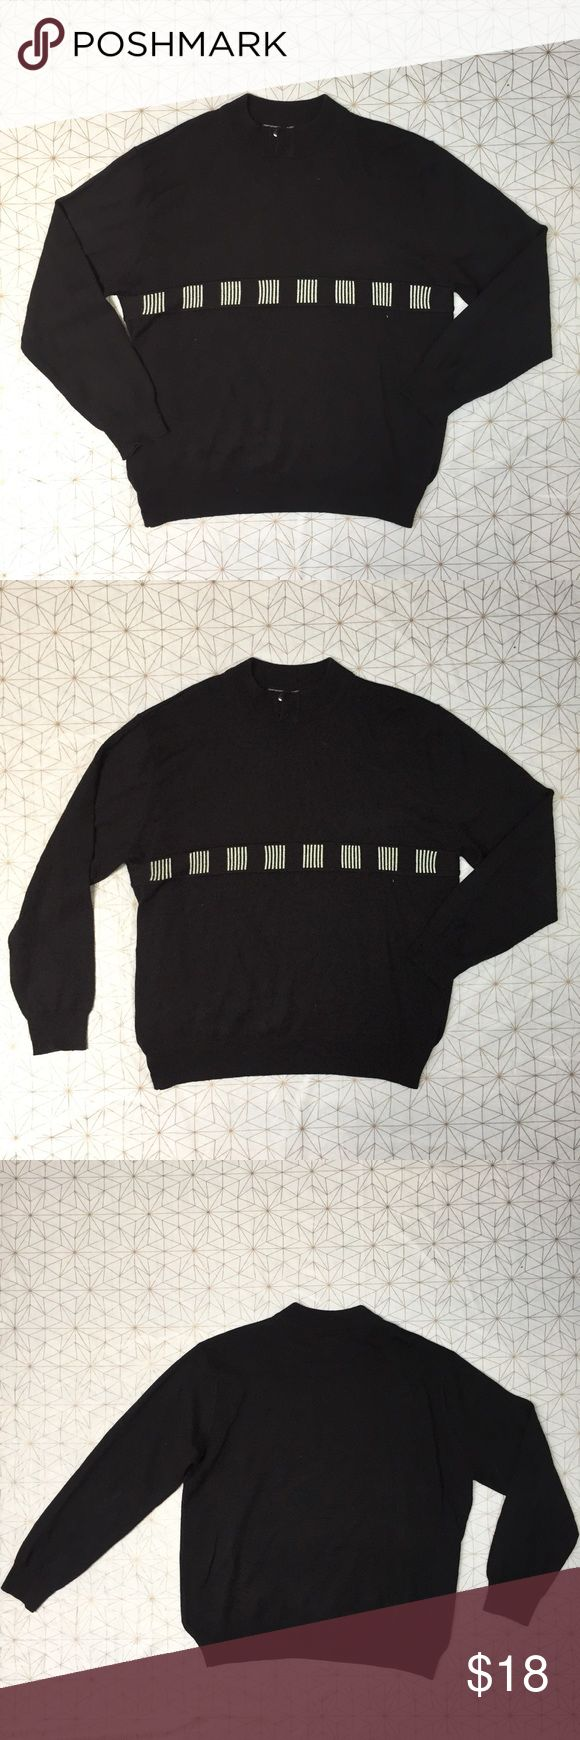 """Le Monde Homme Couture men's black & white sweater - Size: XL - Material: 80% acrylic 20% wool - Condition: very minor pilling  - Color: black and white - Pockets: no - Lined: no - Closure: none - Style: black and white long sleeve sweater with button design near neck  - Extra notes:   *Measurements:  Chest: 25"""" flat  Waist: 24.25"""" flat Length: 28.5""""  Sleeve: 25"""" from shoulder  Rise: Inseam: Le Monde Sweaters Crewneck"""